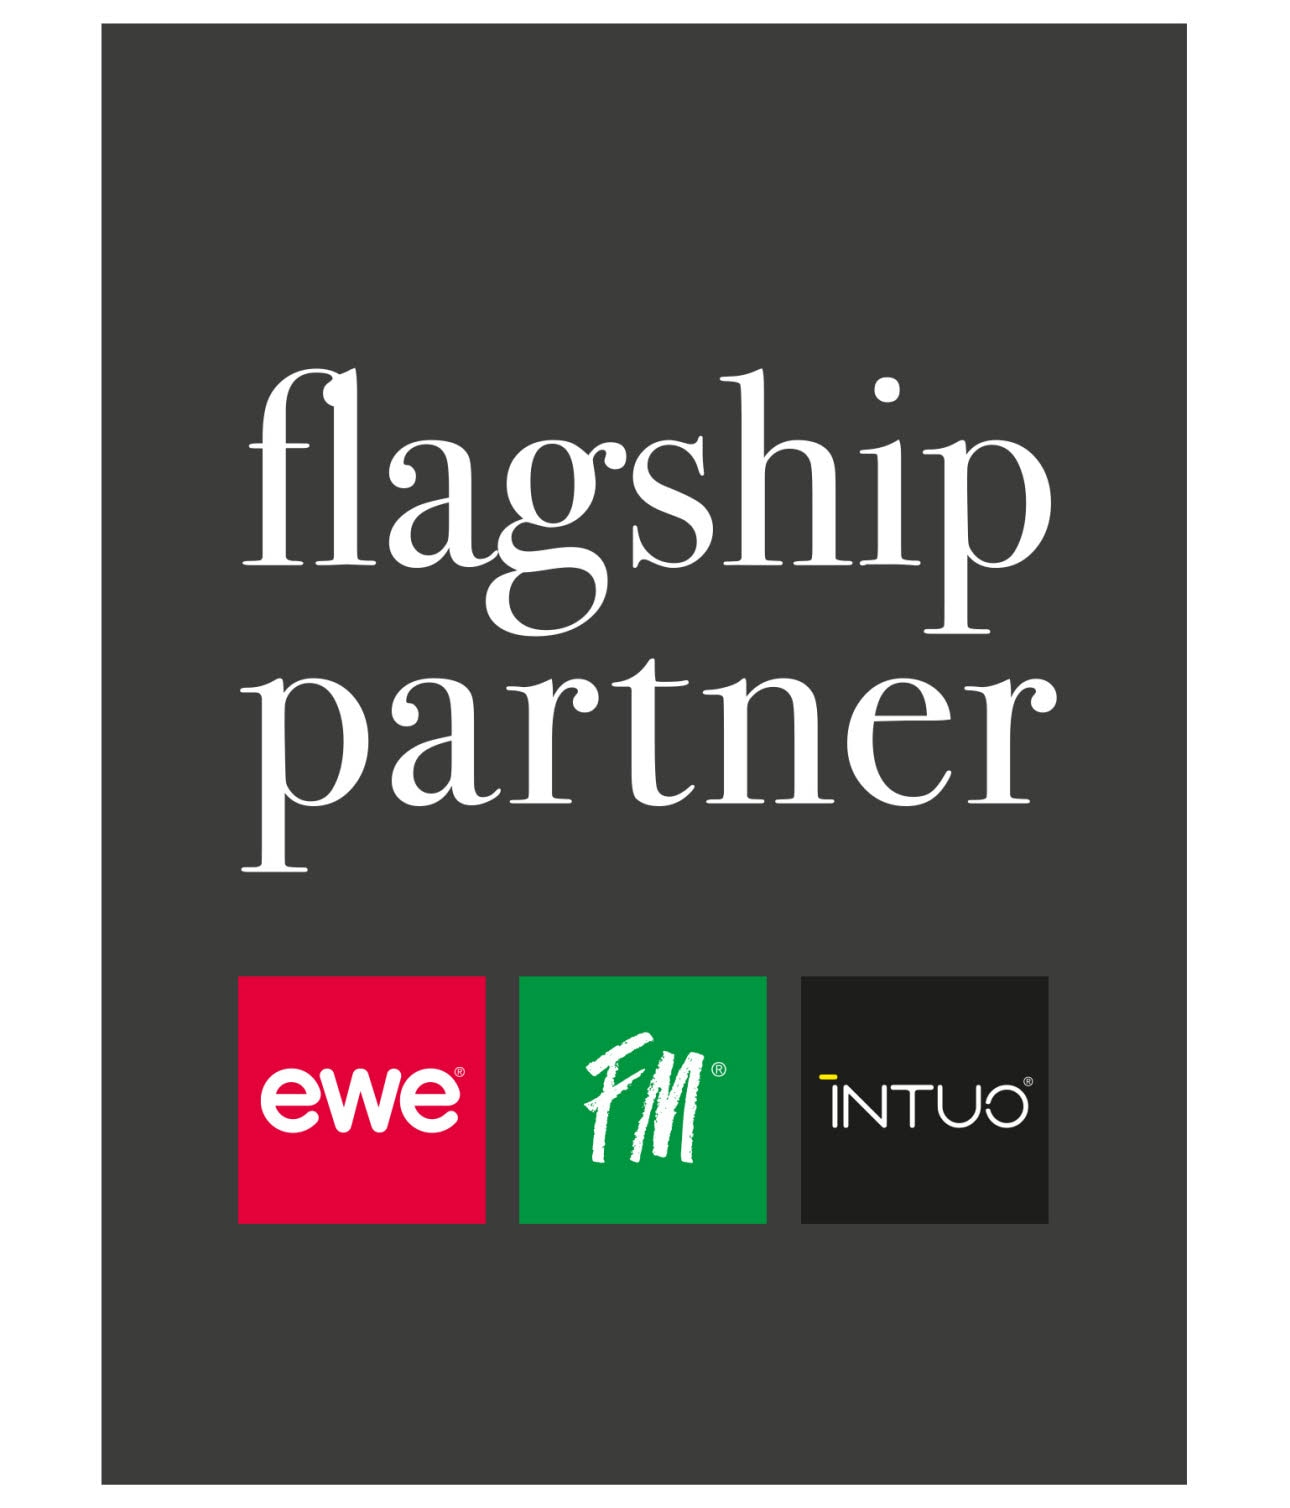 INTUO Flagship Partner